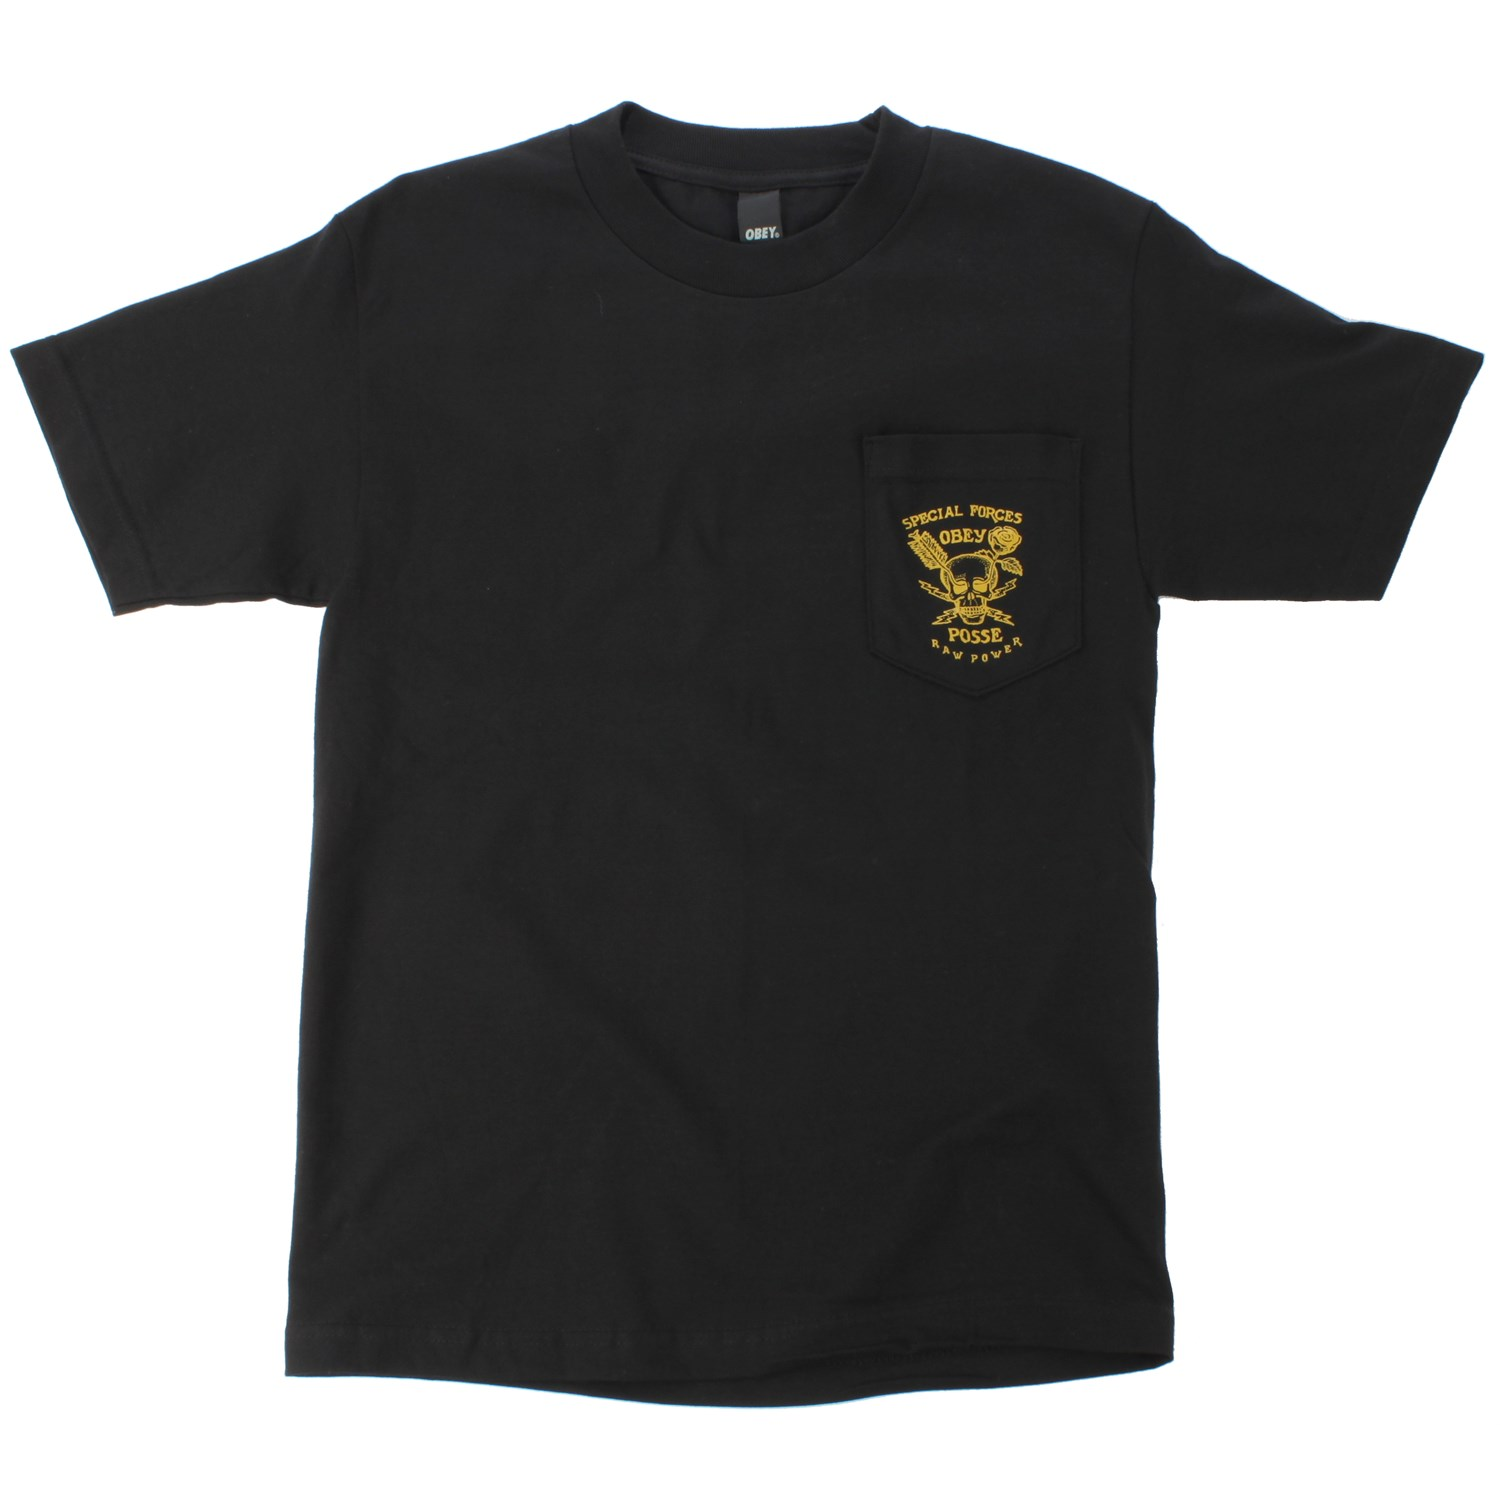 Obey Clothing Special Forces T Shirt | evo outlet